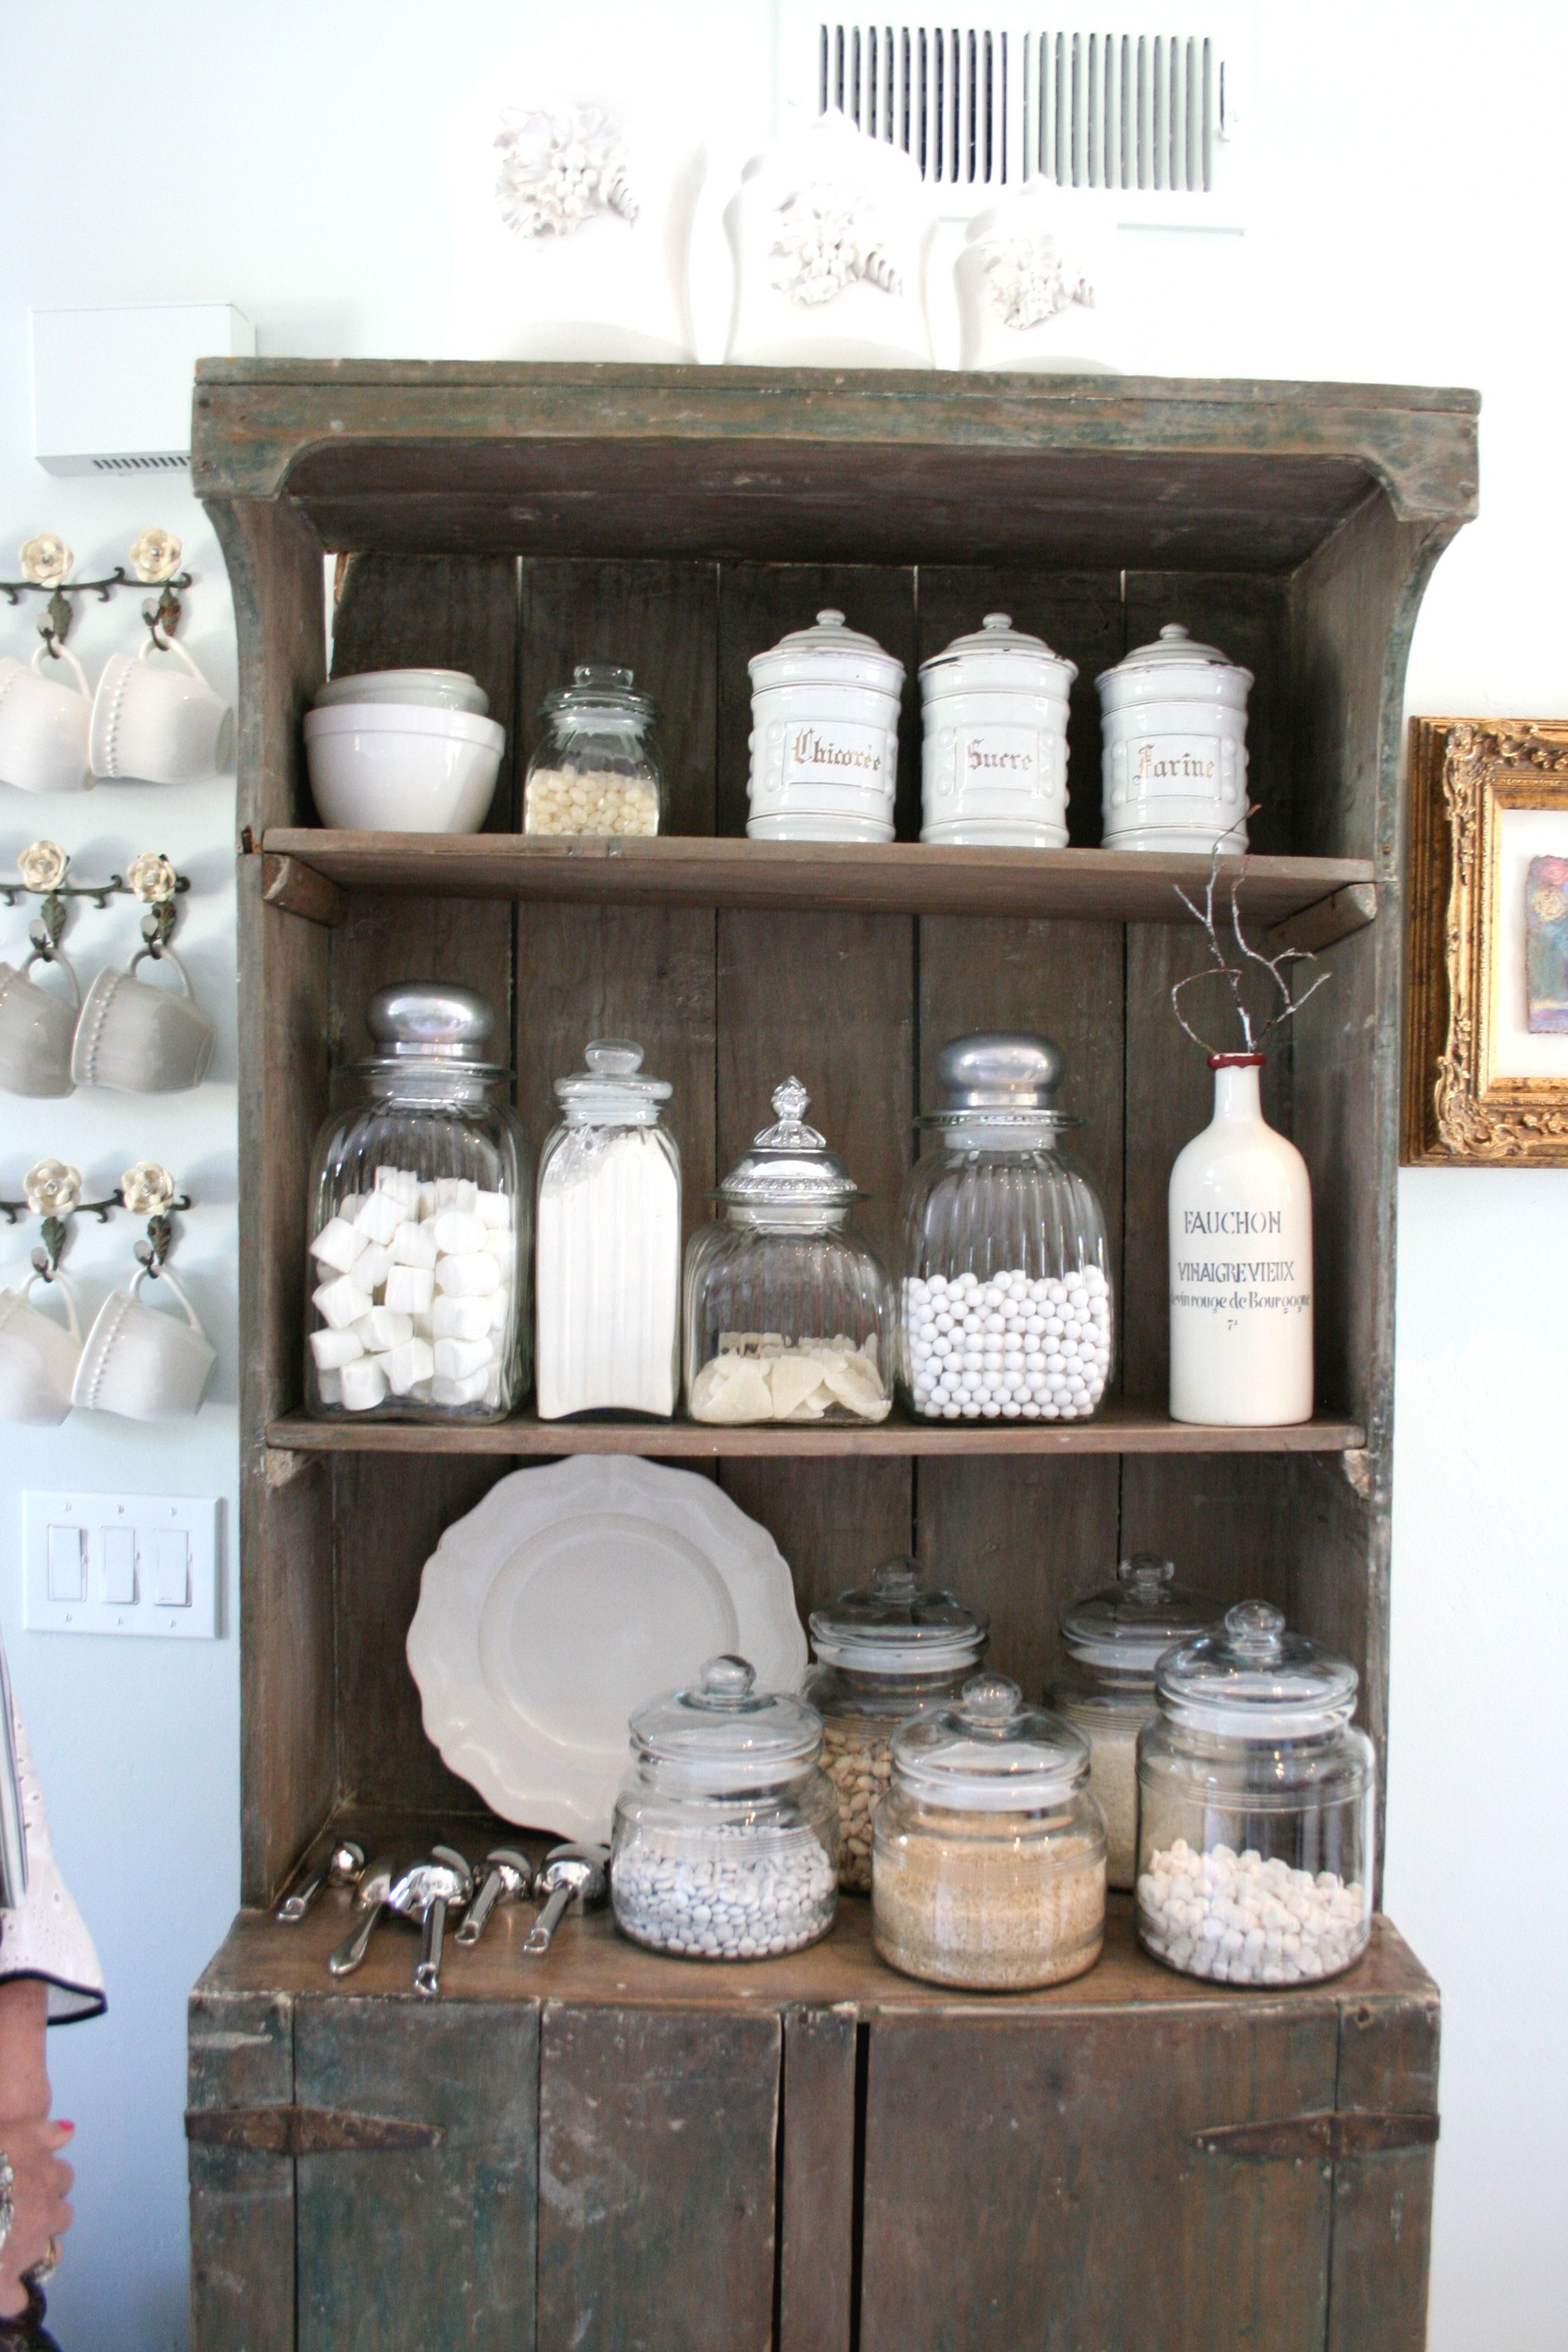 Rustic Kitchen Hutch With Great White Jars And Accessories,